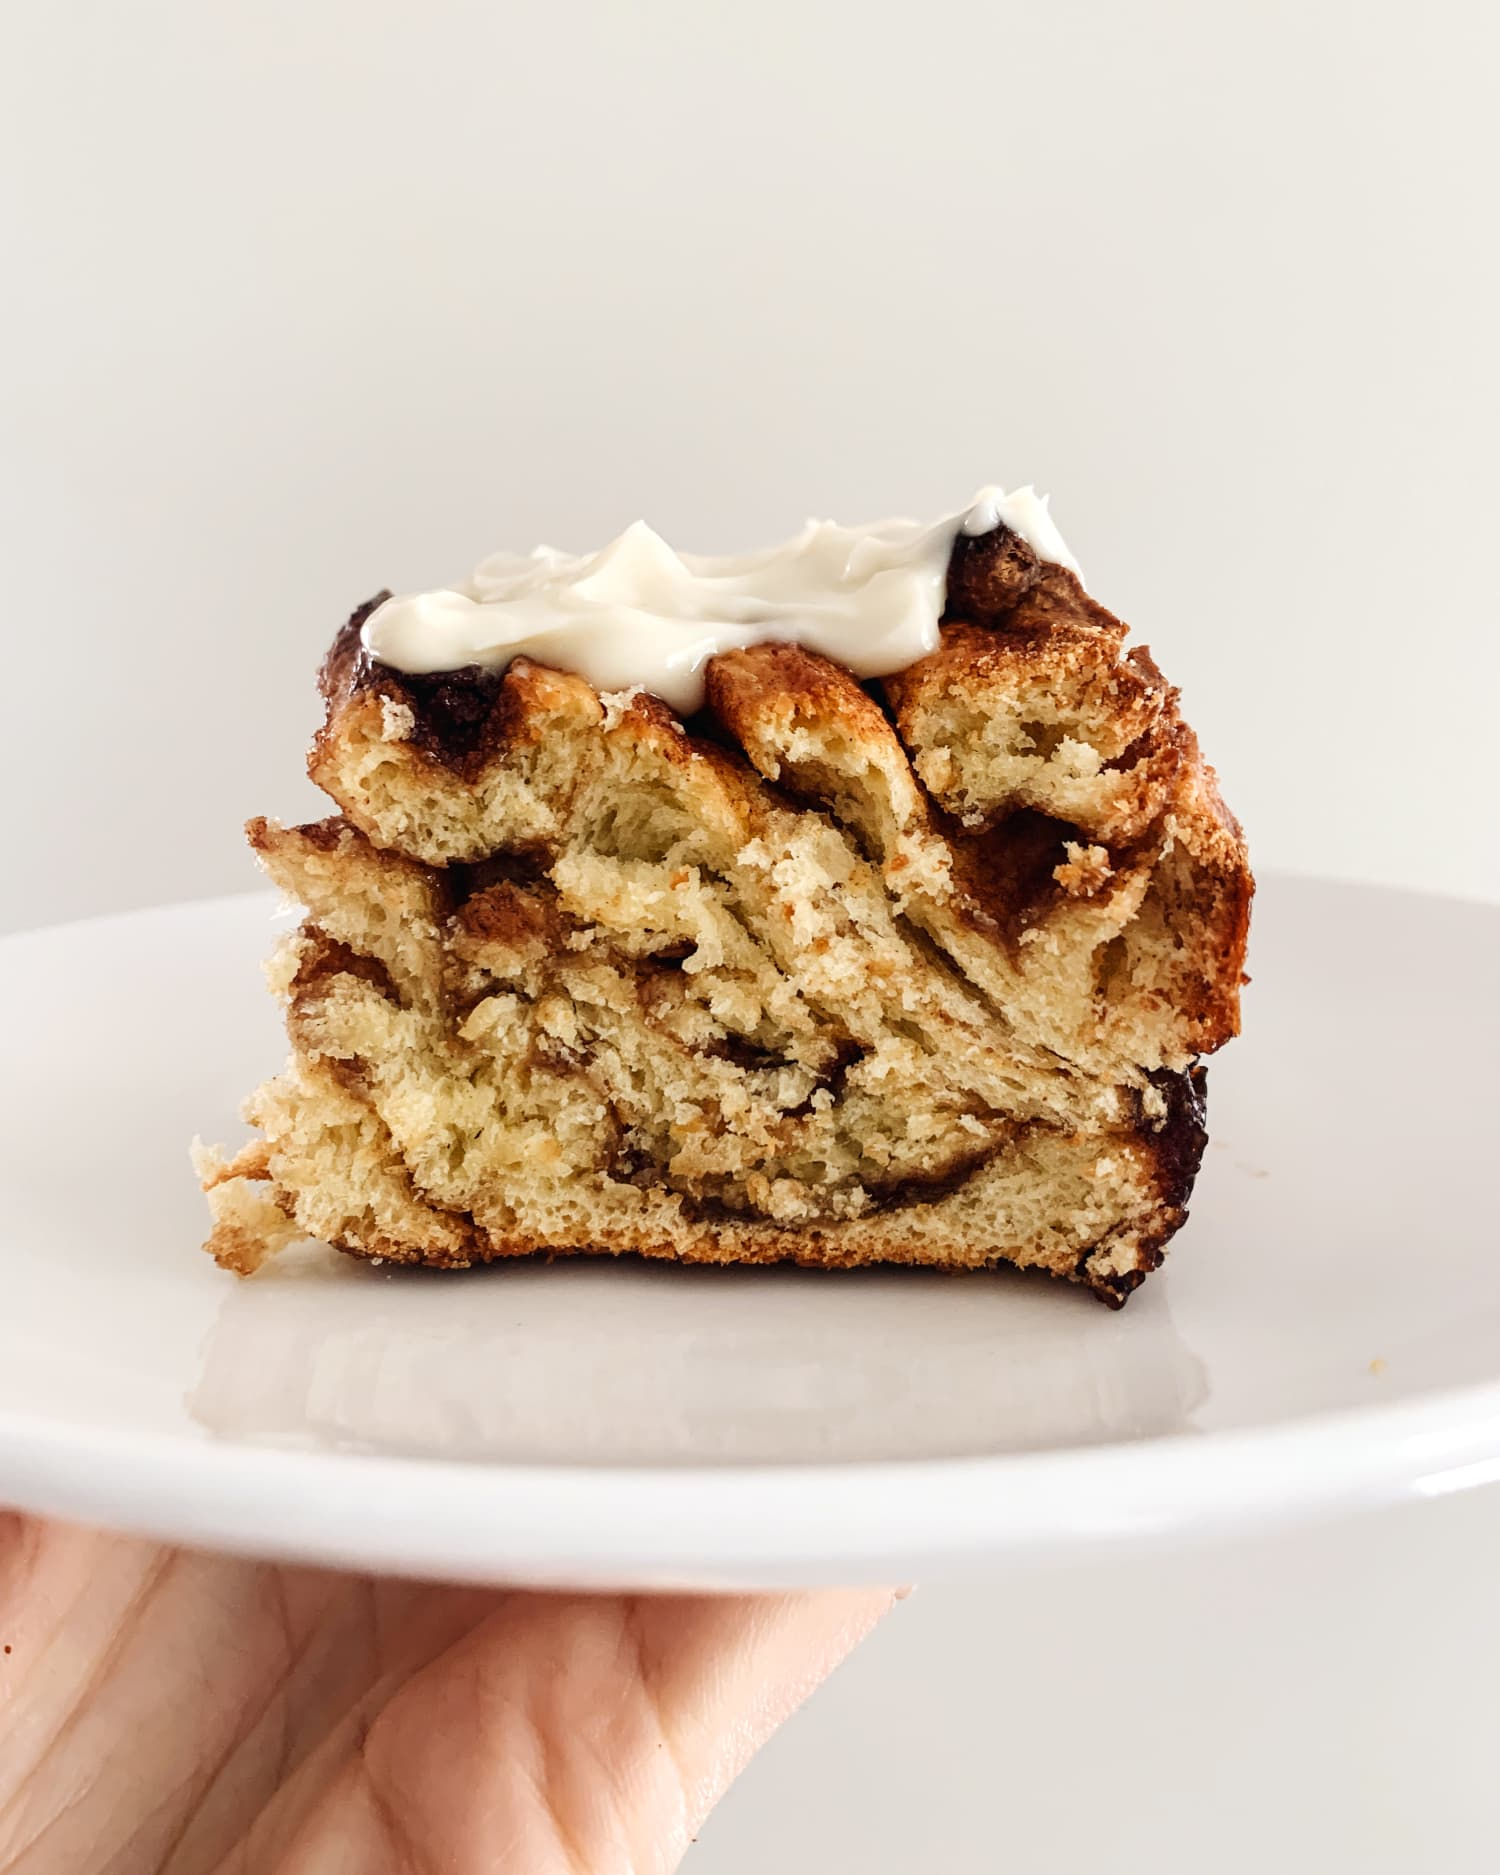 Smitten Kitchen's Twist on Cinnamon Buns Is Honestly Brilliant (I Still Can't Believe the Results)